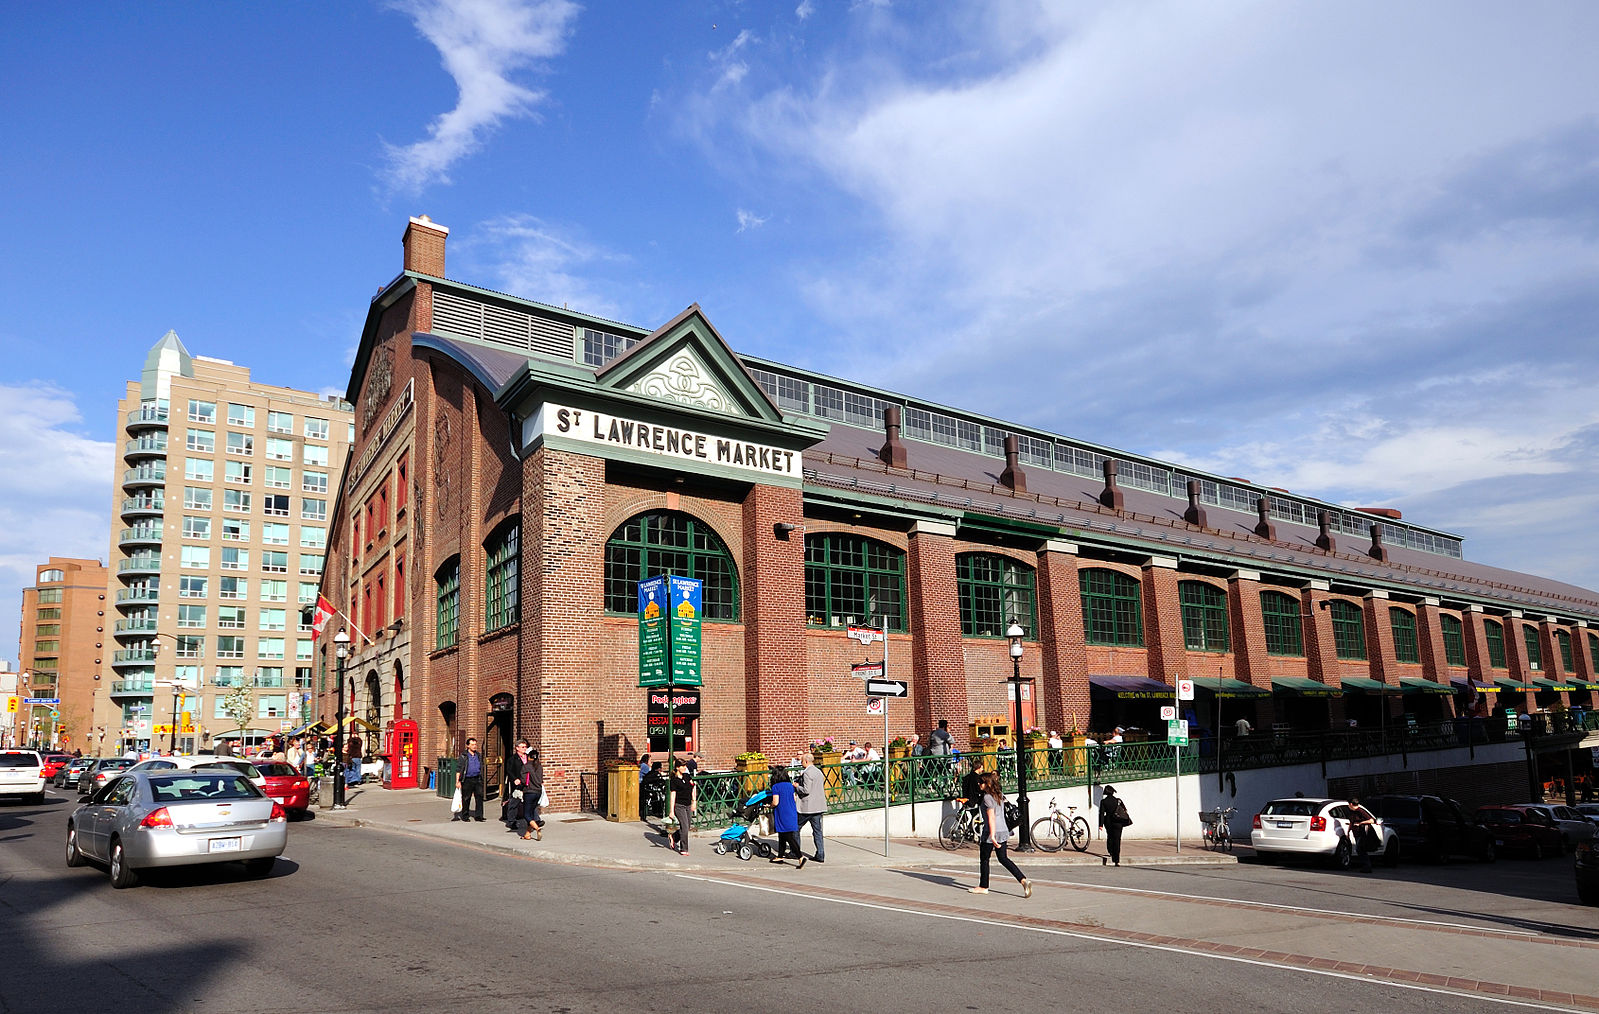 St. Lawrence Market in Toronto. (Photo courtesy Wladyslaw/Wikimedia Commons)